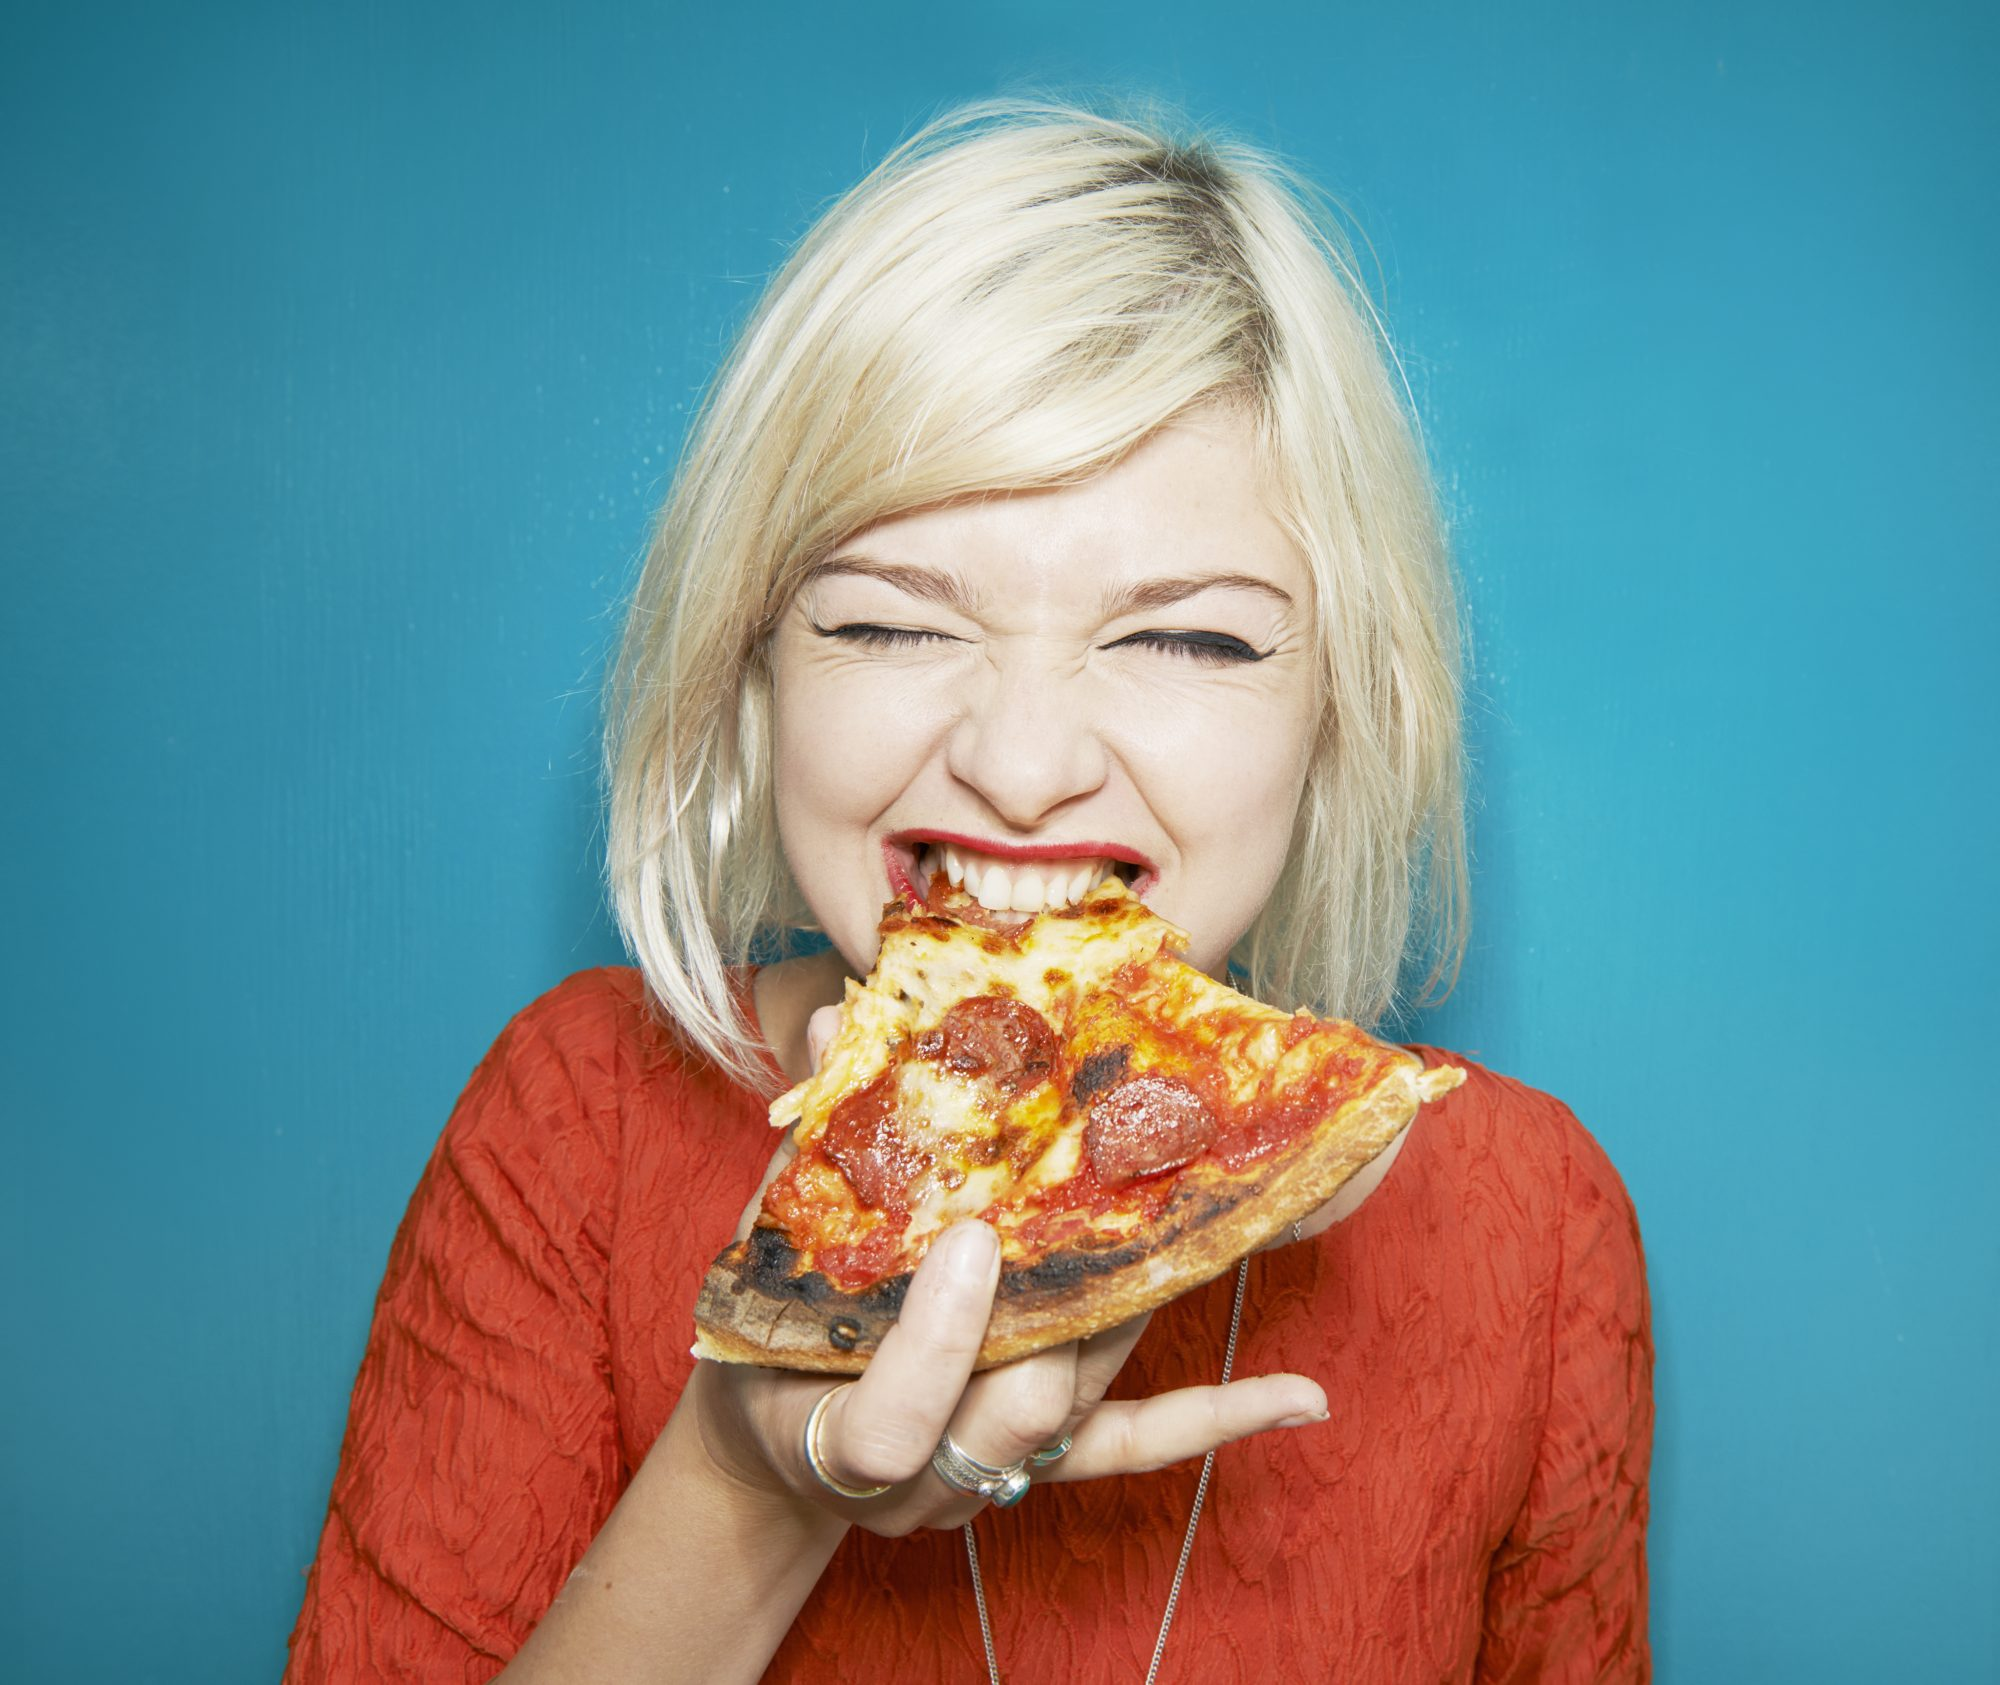 The 10 Most Addictive Foods And How To Stop Eating Them